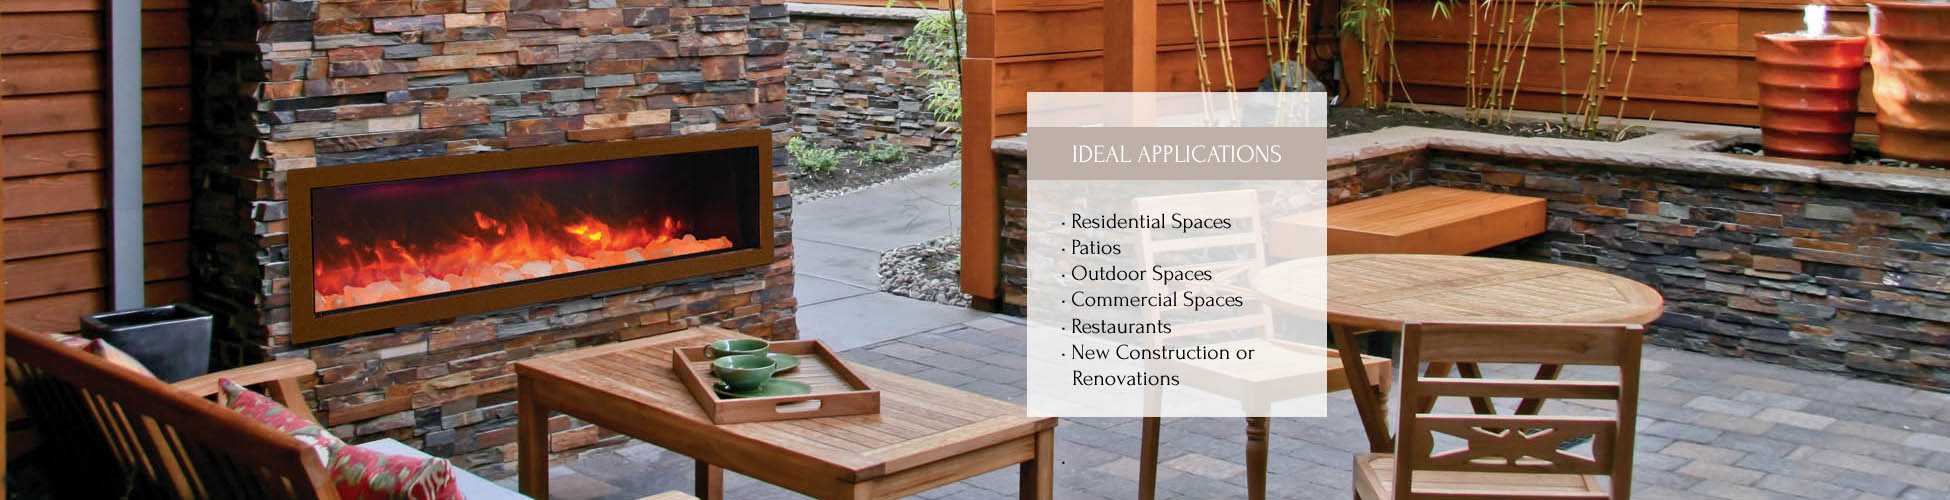 Sierra Flame outdoor electric fireplace